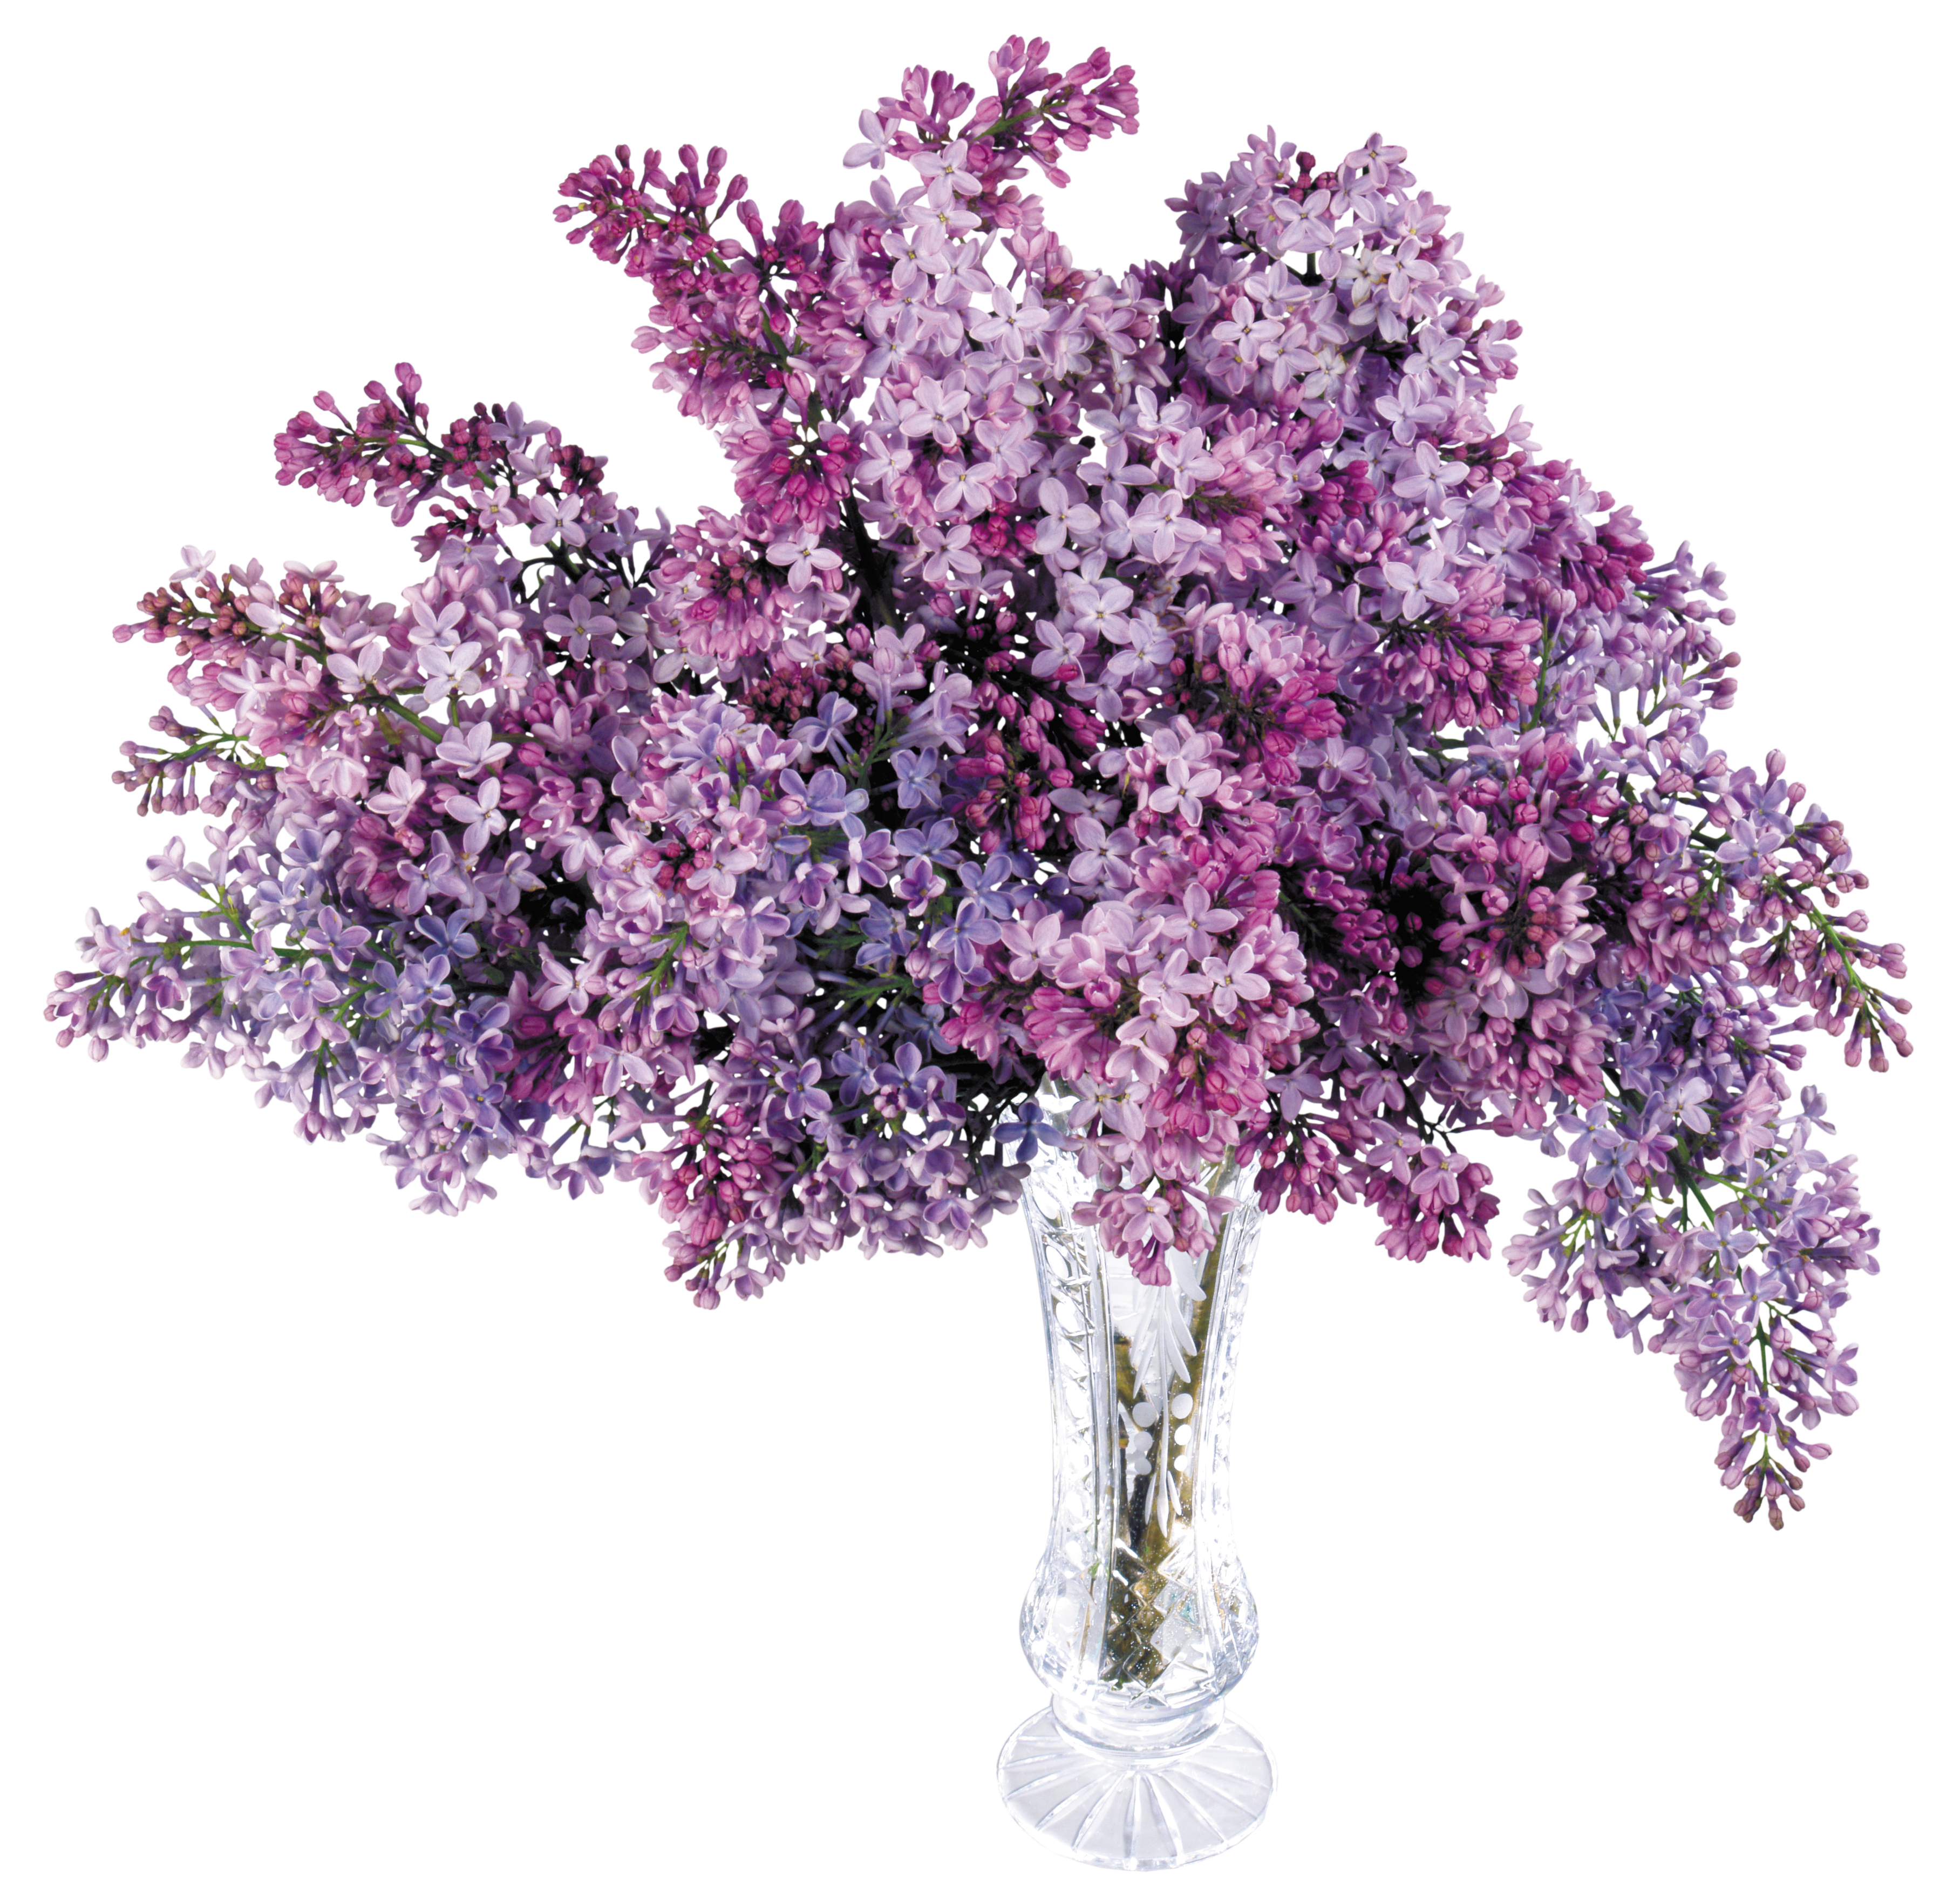 Lilac tree clipart svg black and white Lilac Tree Clipart svg black and white